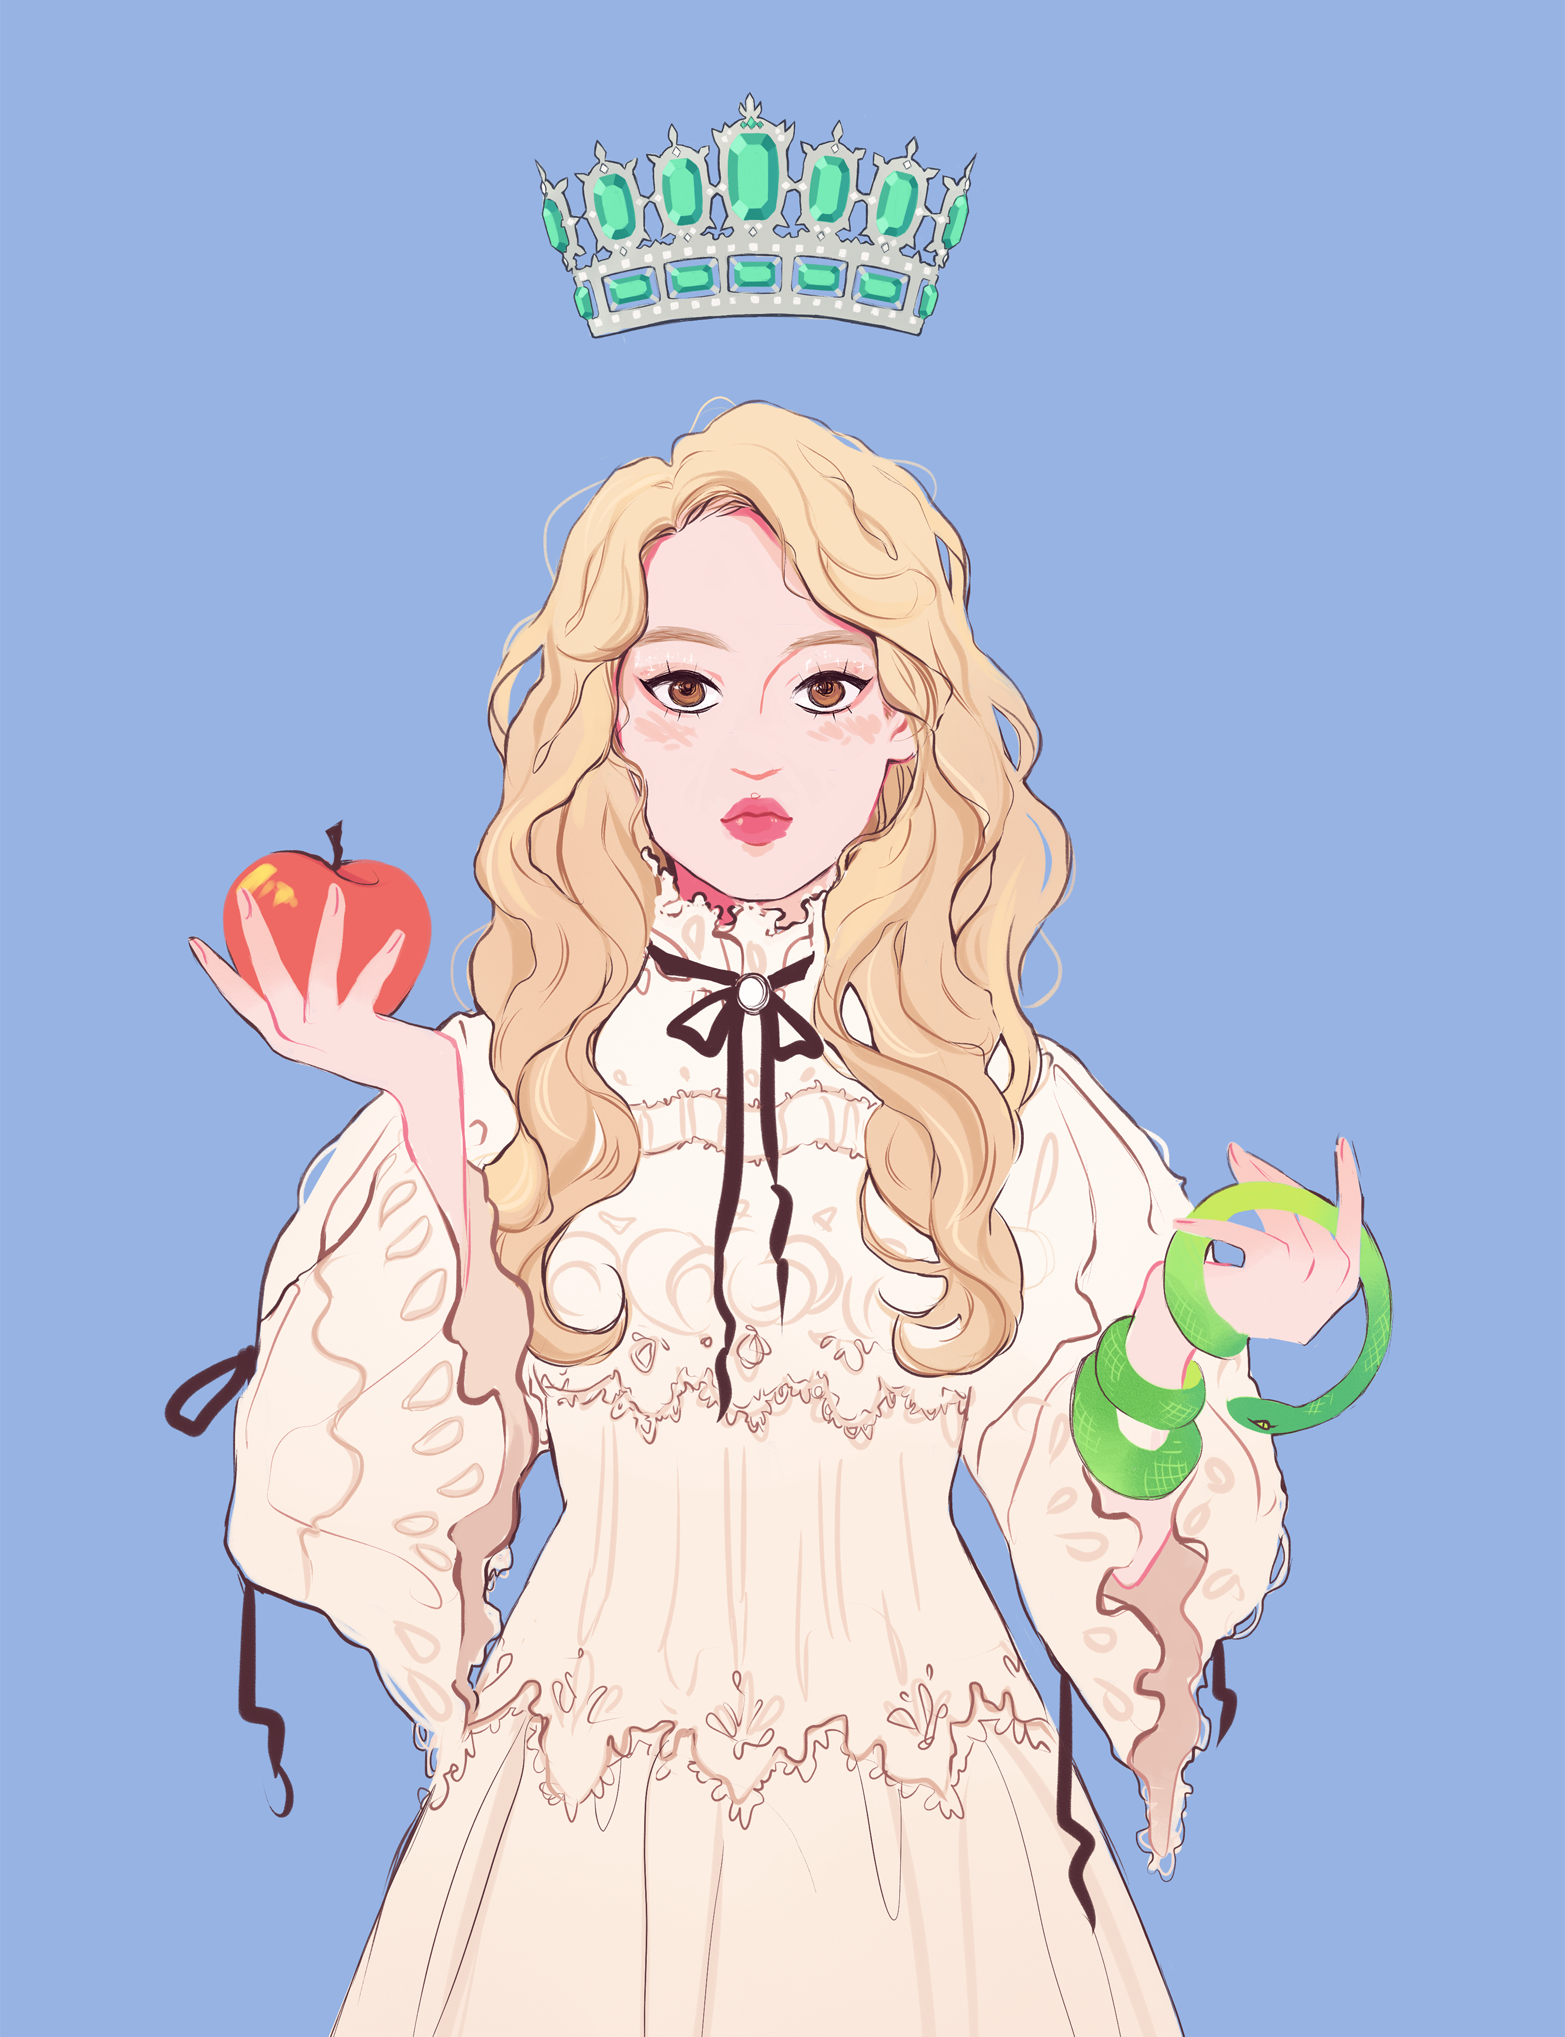 In this universe, it's not a coincidence that I've met myself #LOONA #GoWon https://t.co/BNyemPbqR2